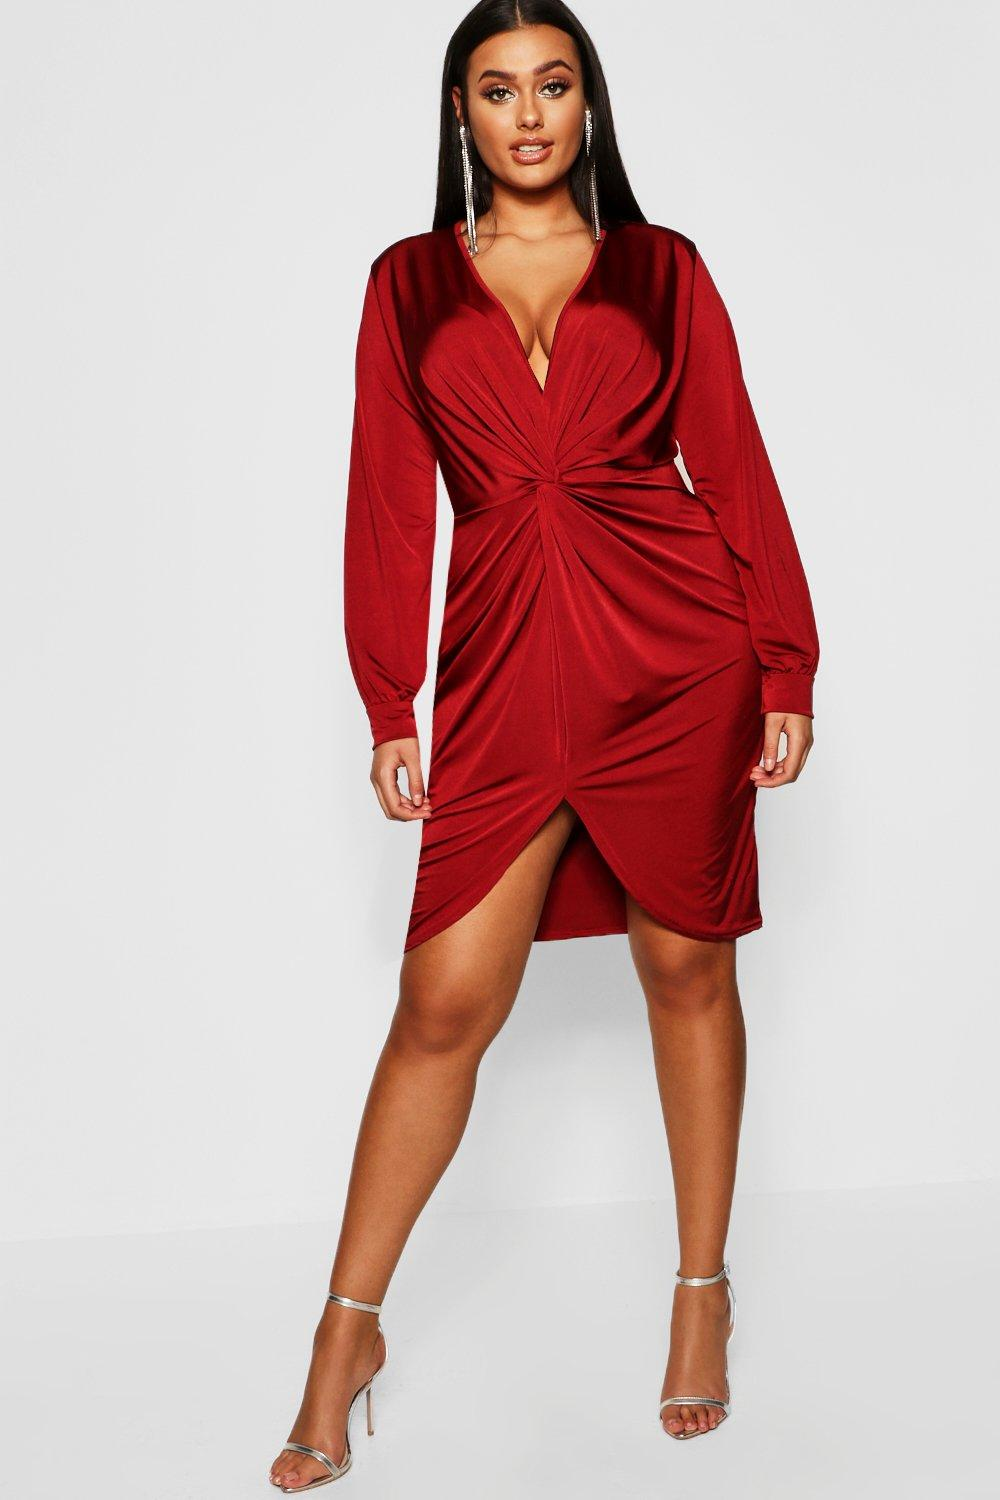 60s 70s Plus Size Dresses, Clothing, Costumes Womens Plus Disco Slinky Twist Front Wrap Dress - red - 16 $50.00 AT vintagedancer.com